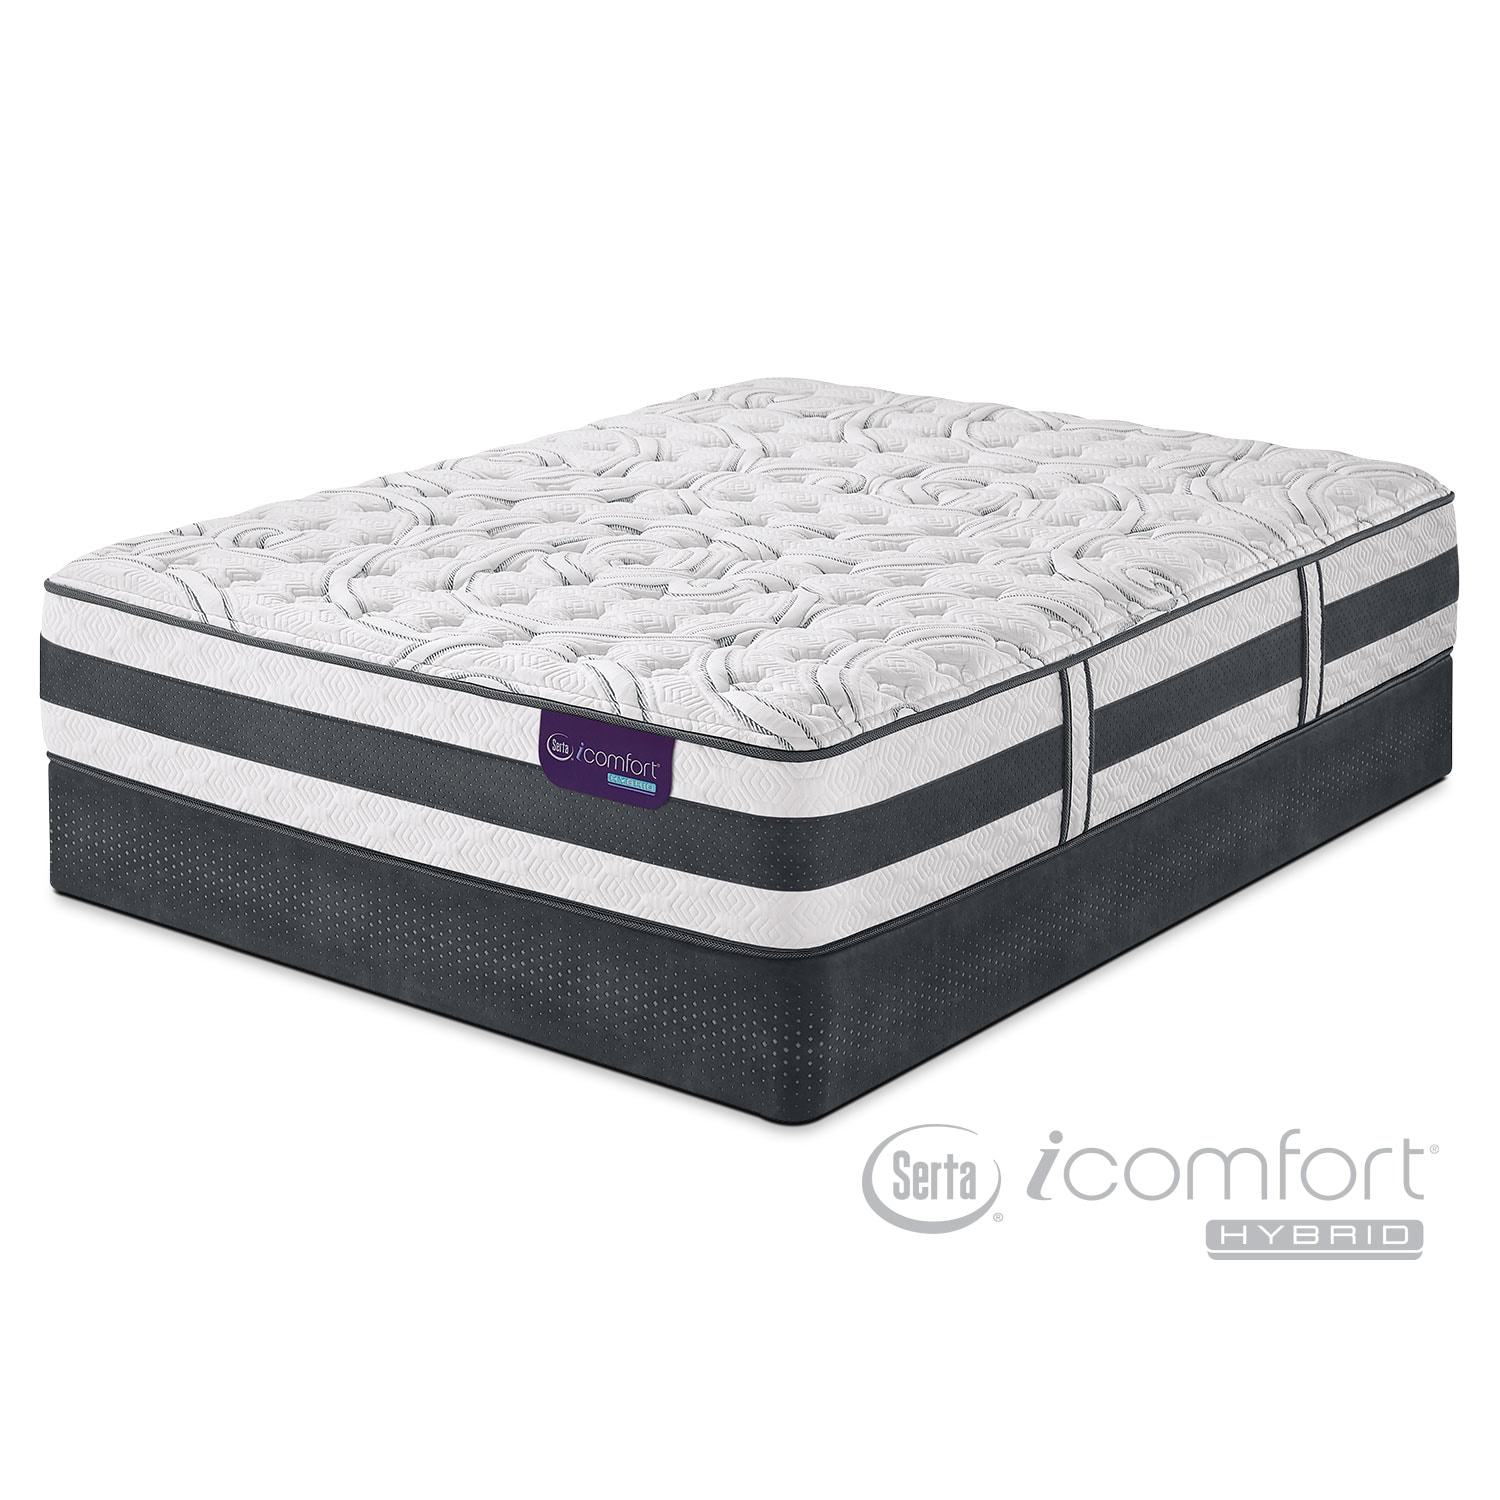 Applause II Firm California King Mattress/Split Foundation Set